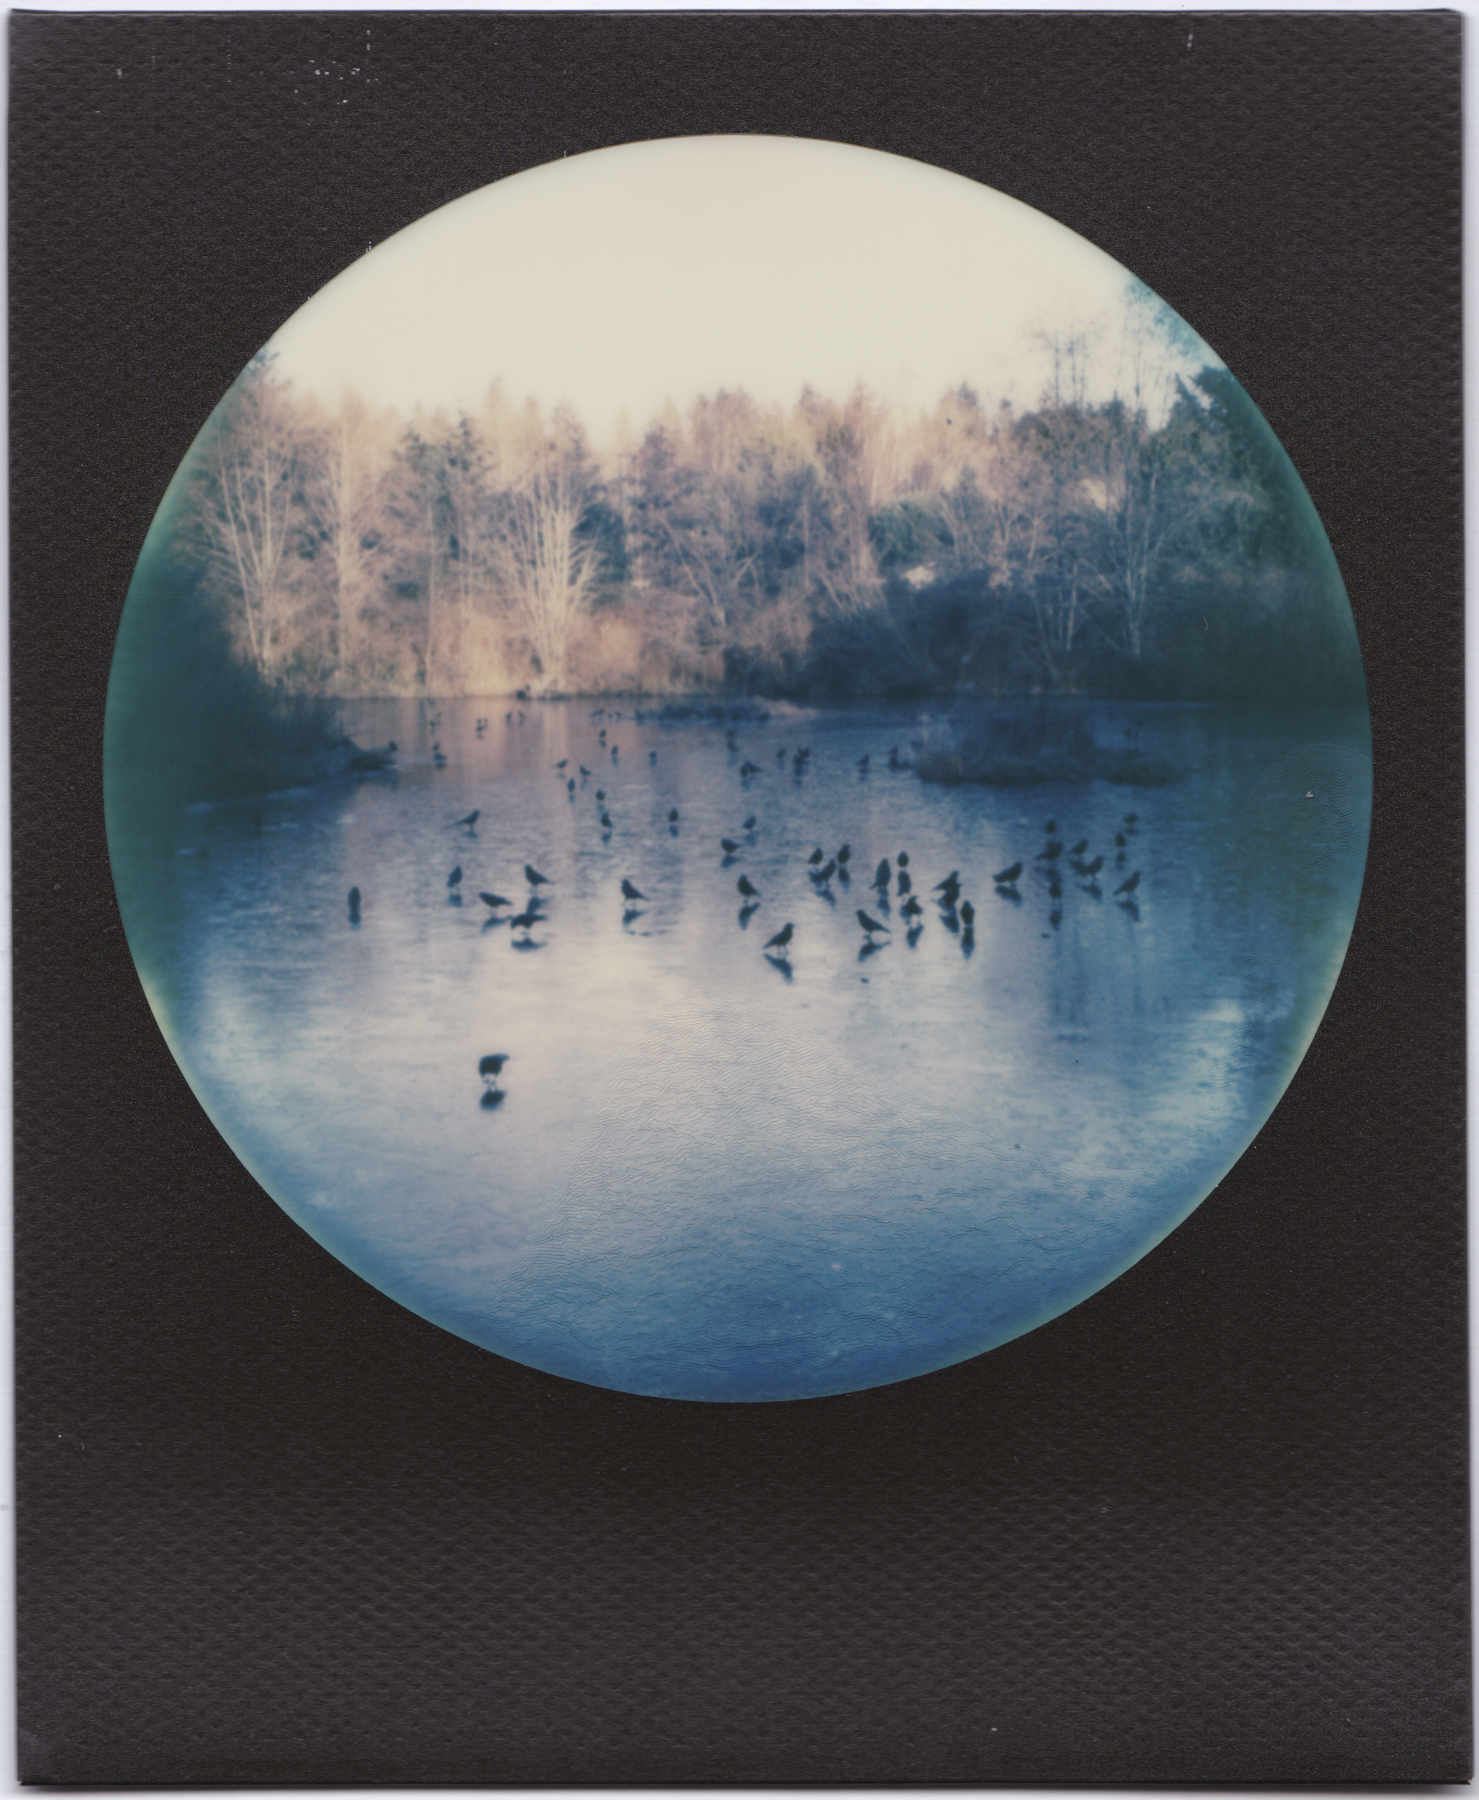 Crows On Ice | MiNT SLR 670S | Dave Morgan